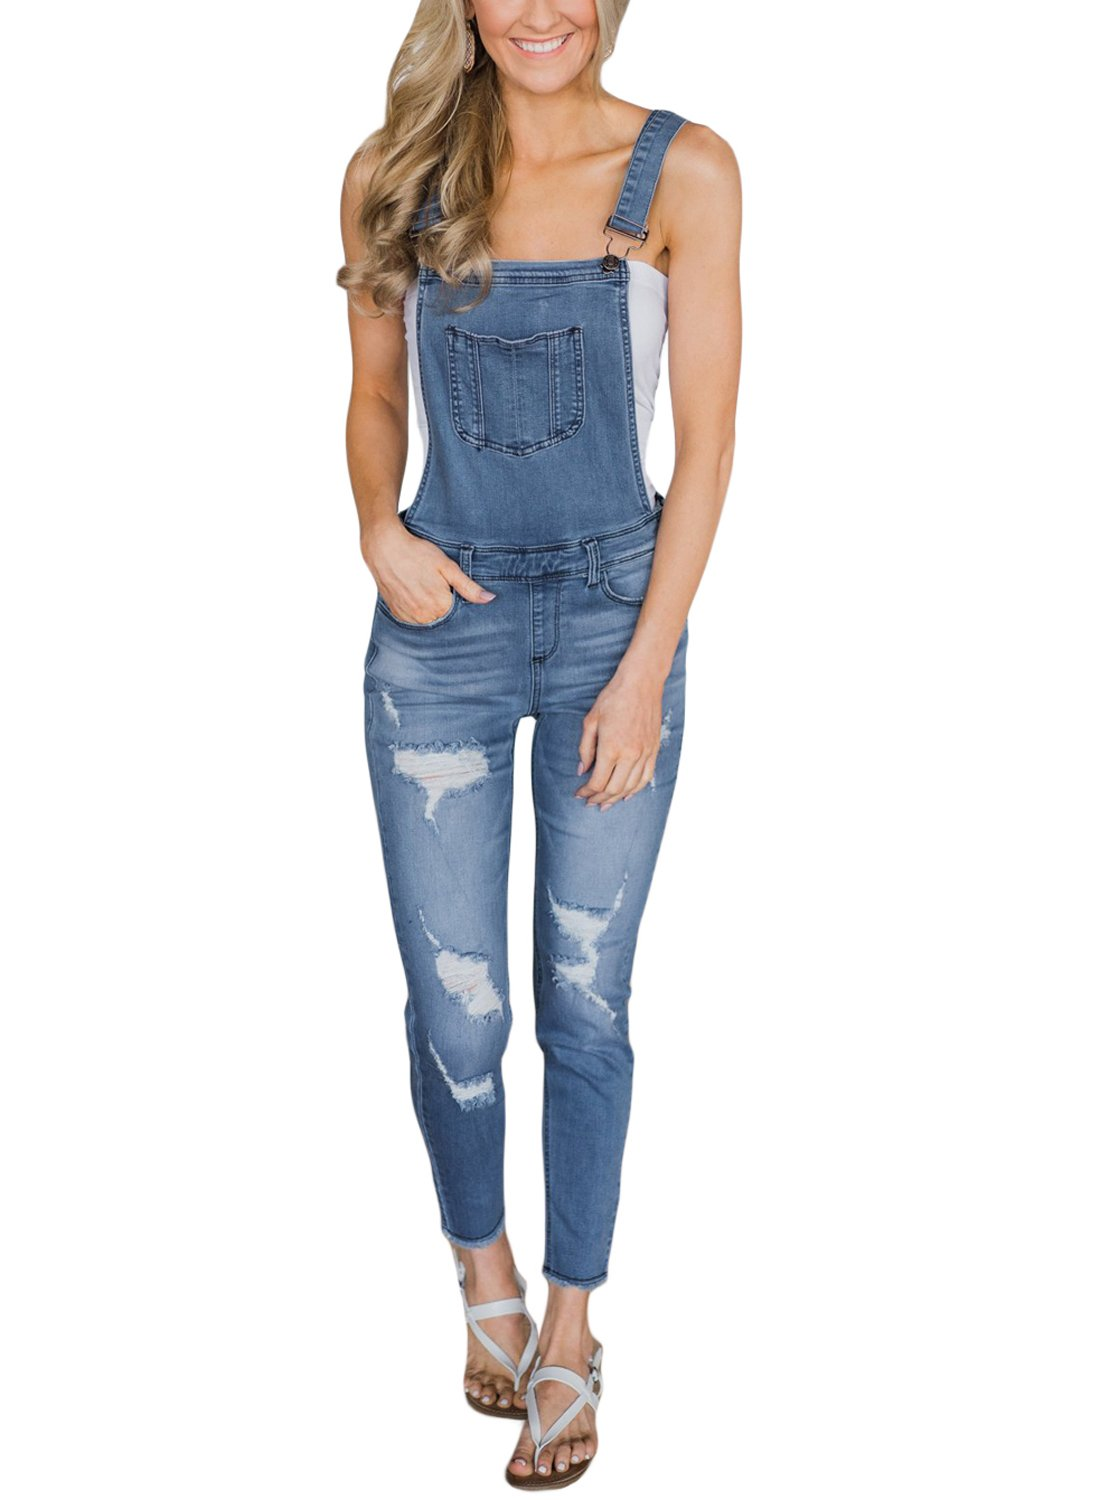 Dearlove Womens Washed Distressed Jeans Overalls Cross Back Dungarees Jumpsuit UK 6-22 DL786029